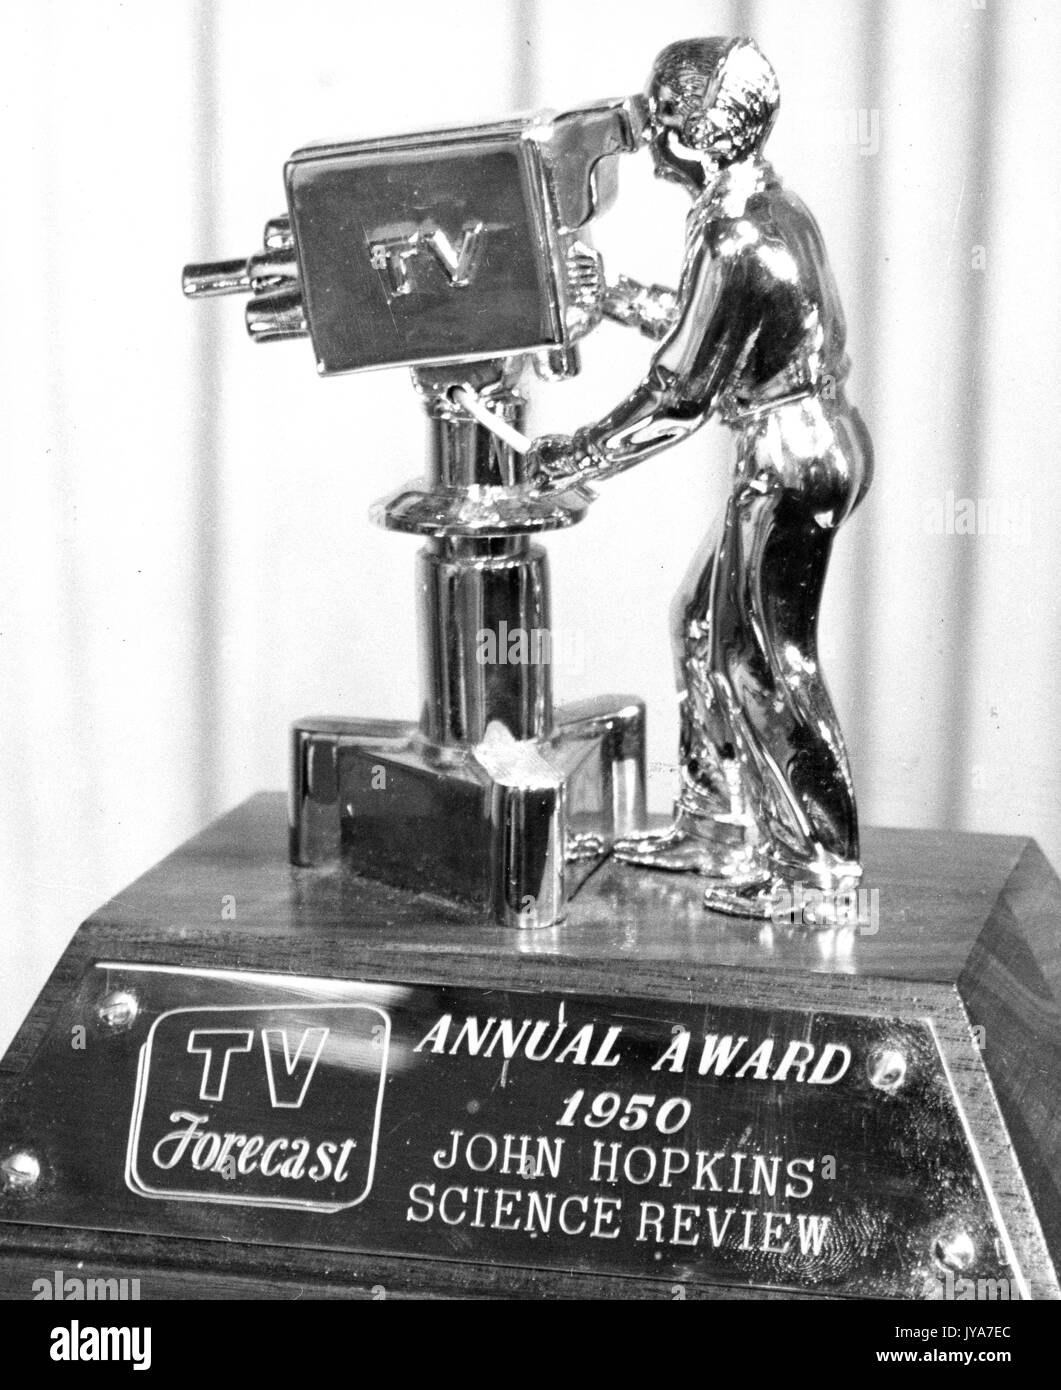 TV Forecast Award trophy with a statue of a man videotaping on top of a wooden base, the wooden base has a plaque that has engraved on it 'Annual Award 1950 John Hopkins Science Review, 1950. - Stock Image